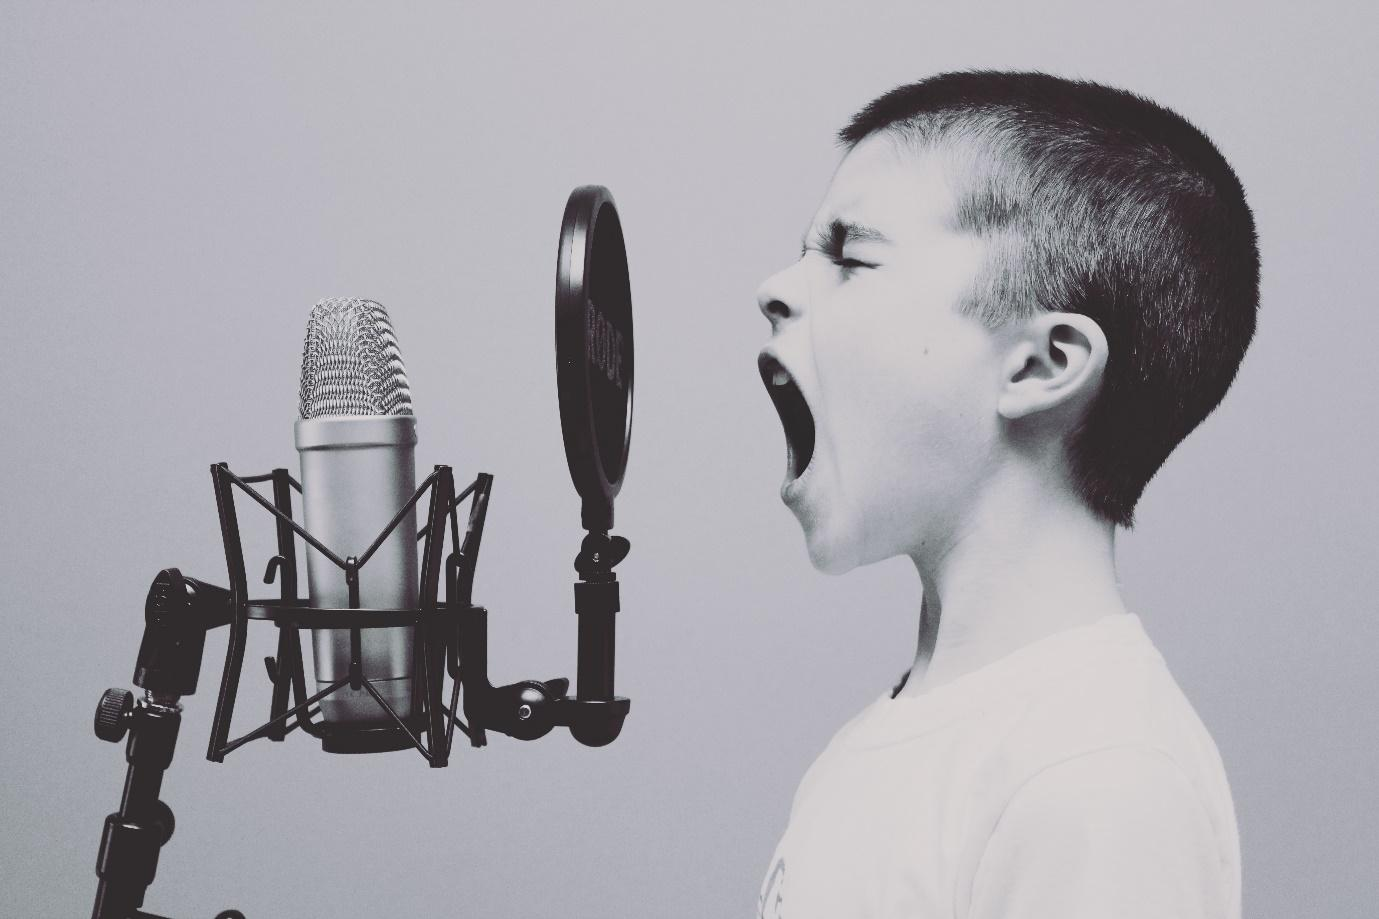 A teenager screaming into microphone